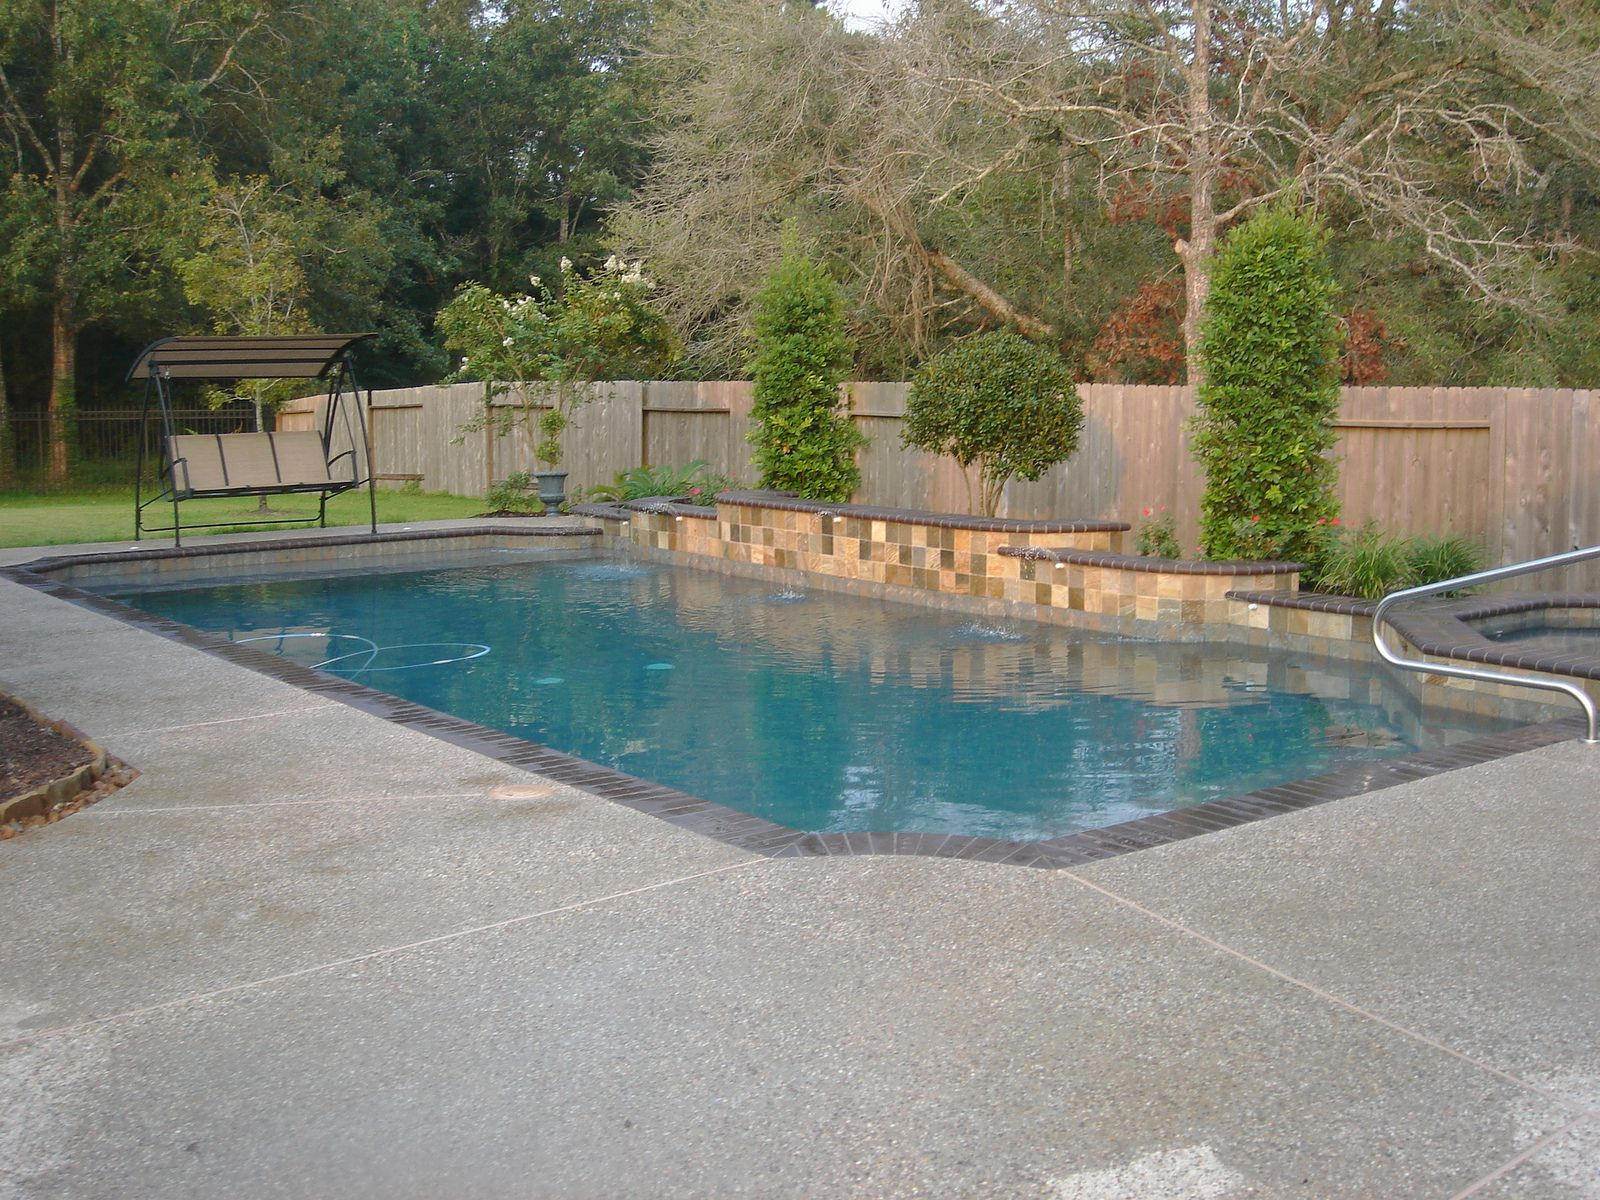 simple pool designs - Google Search | Pools | Pinterest | Swing seat ...